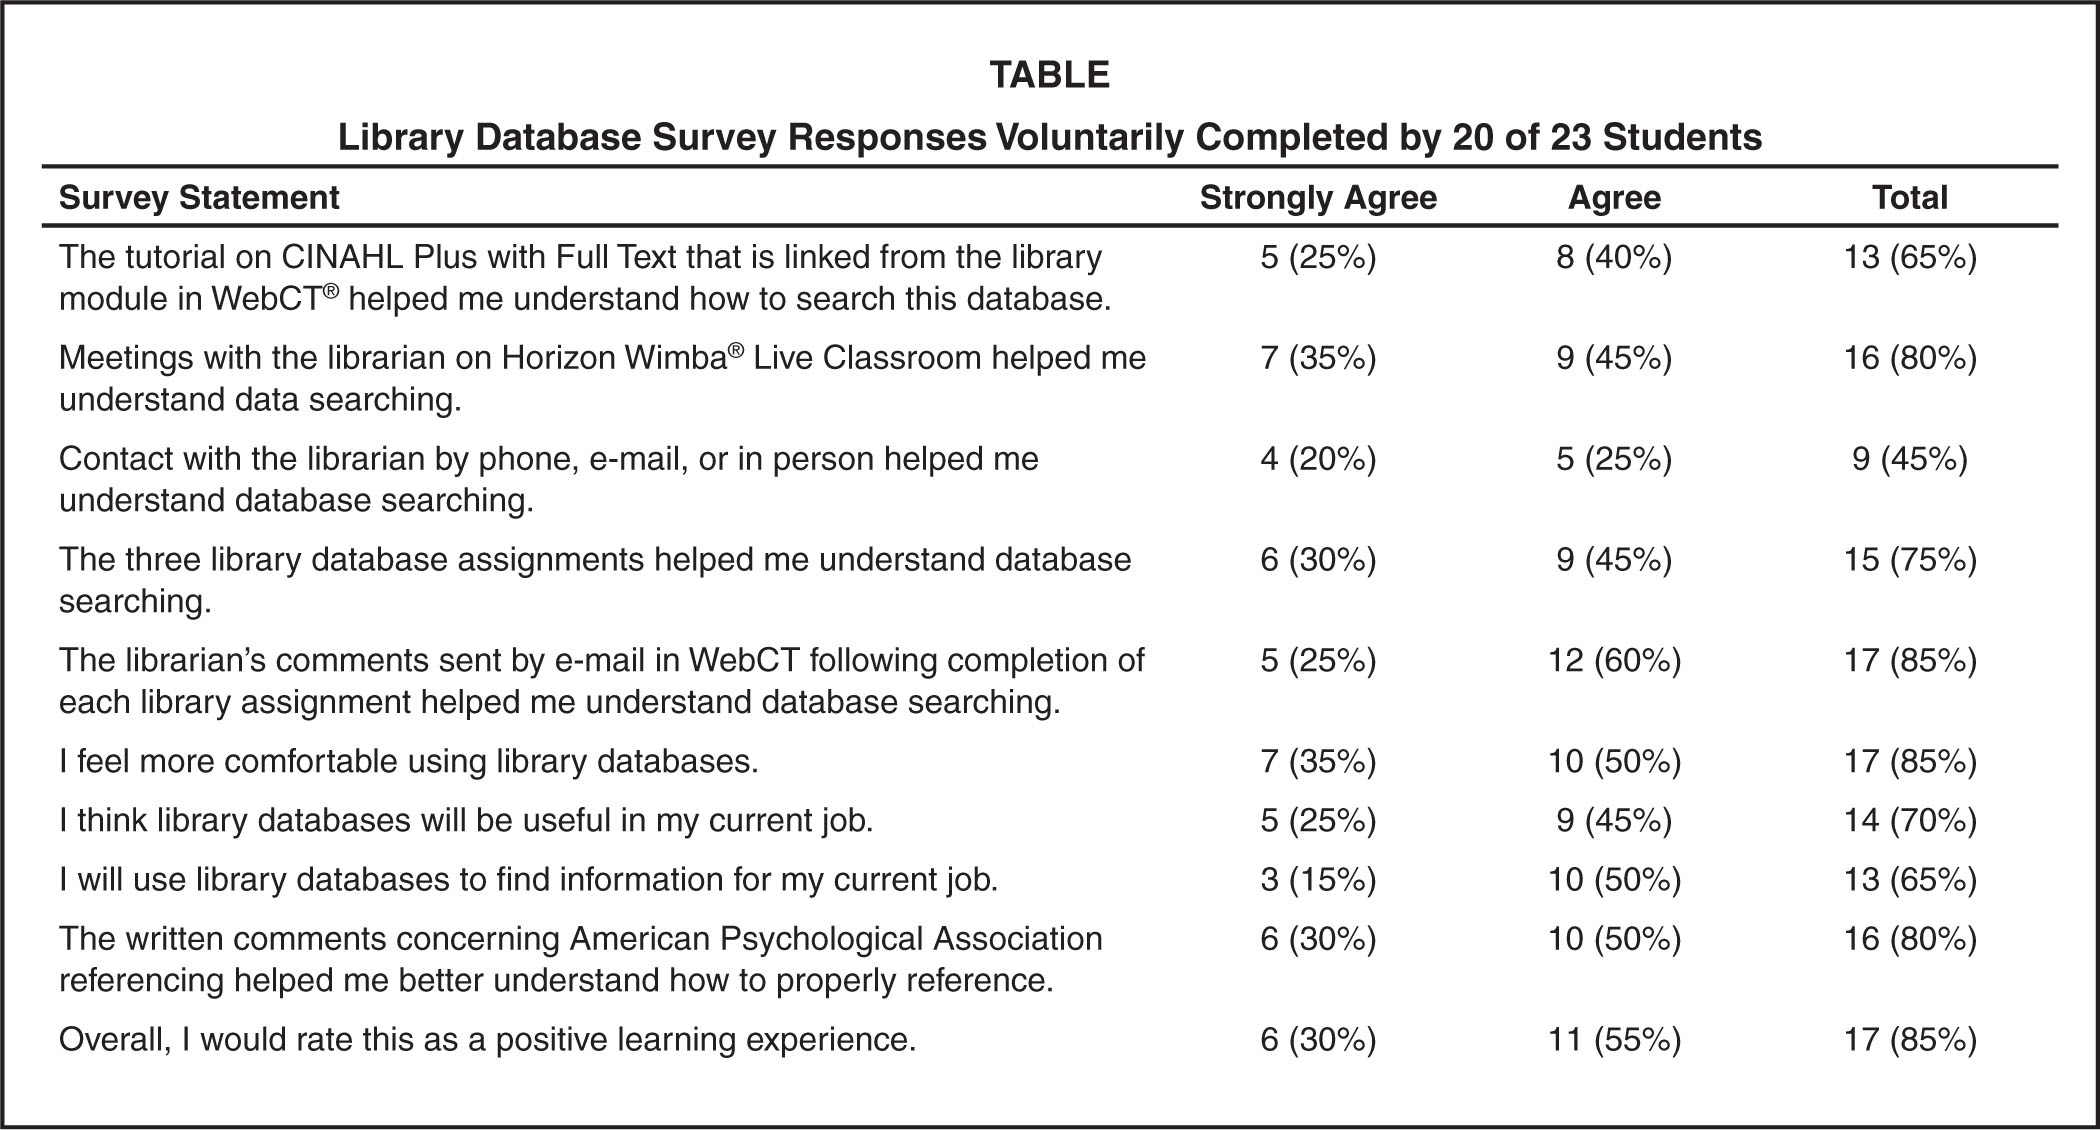 Library Database Survey Responses Voluntarily Completed by 20 of 23 Students